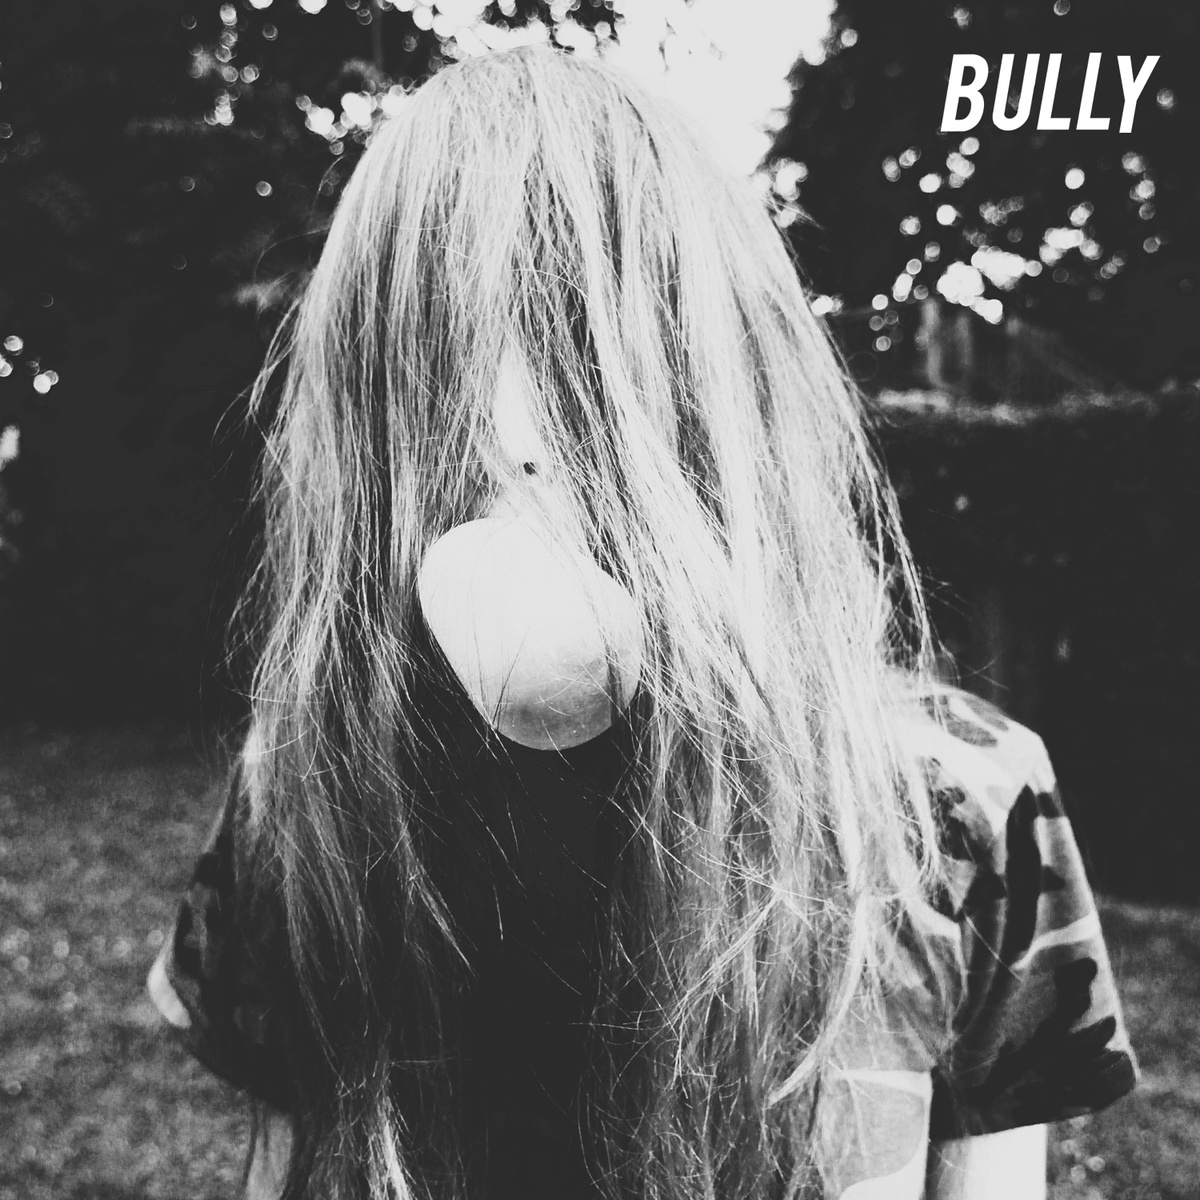 Bully's EP is out now.